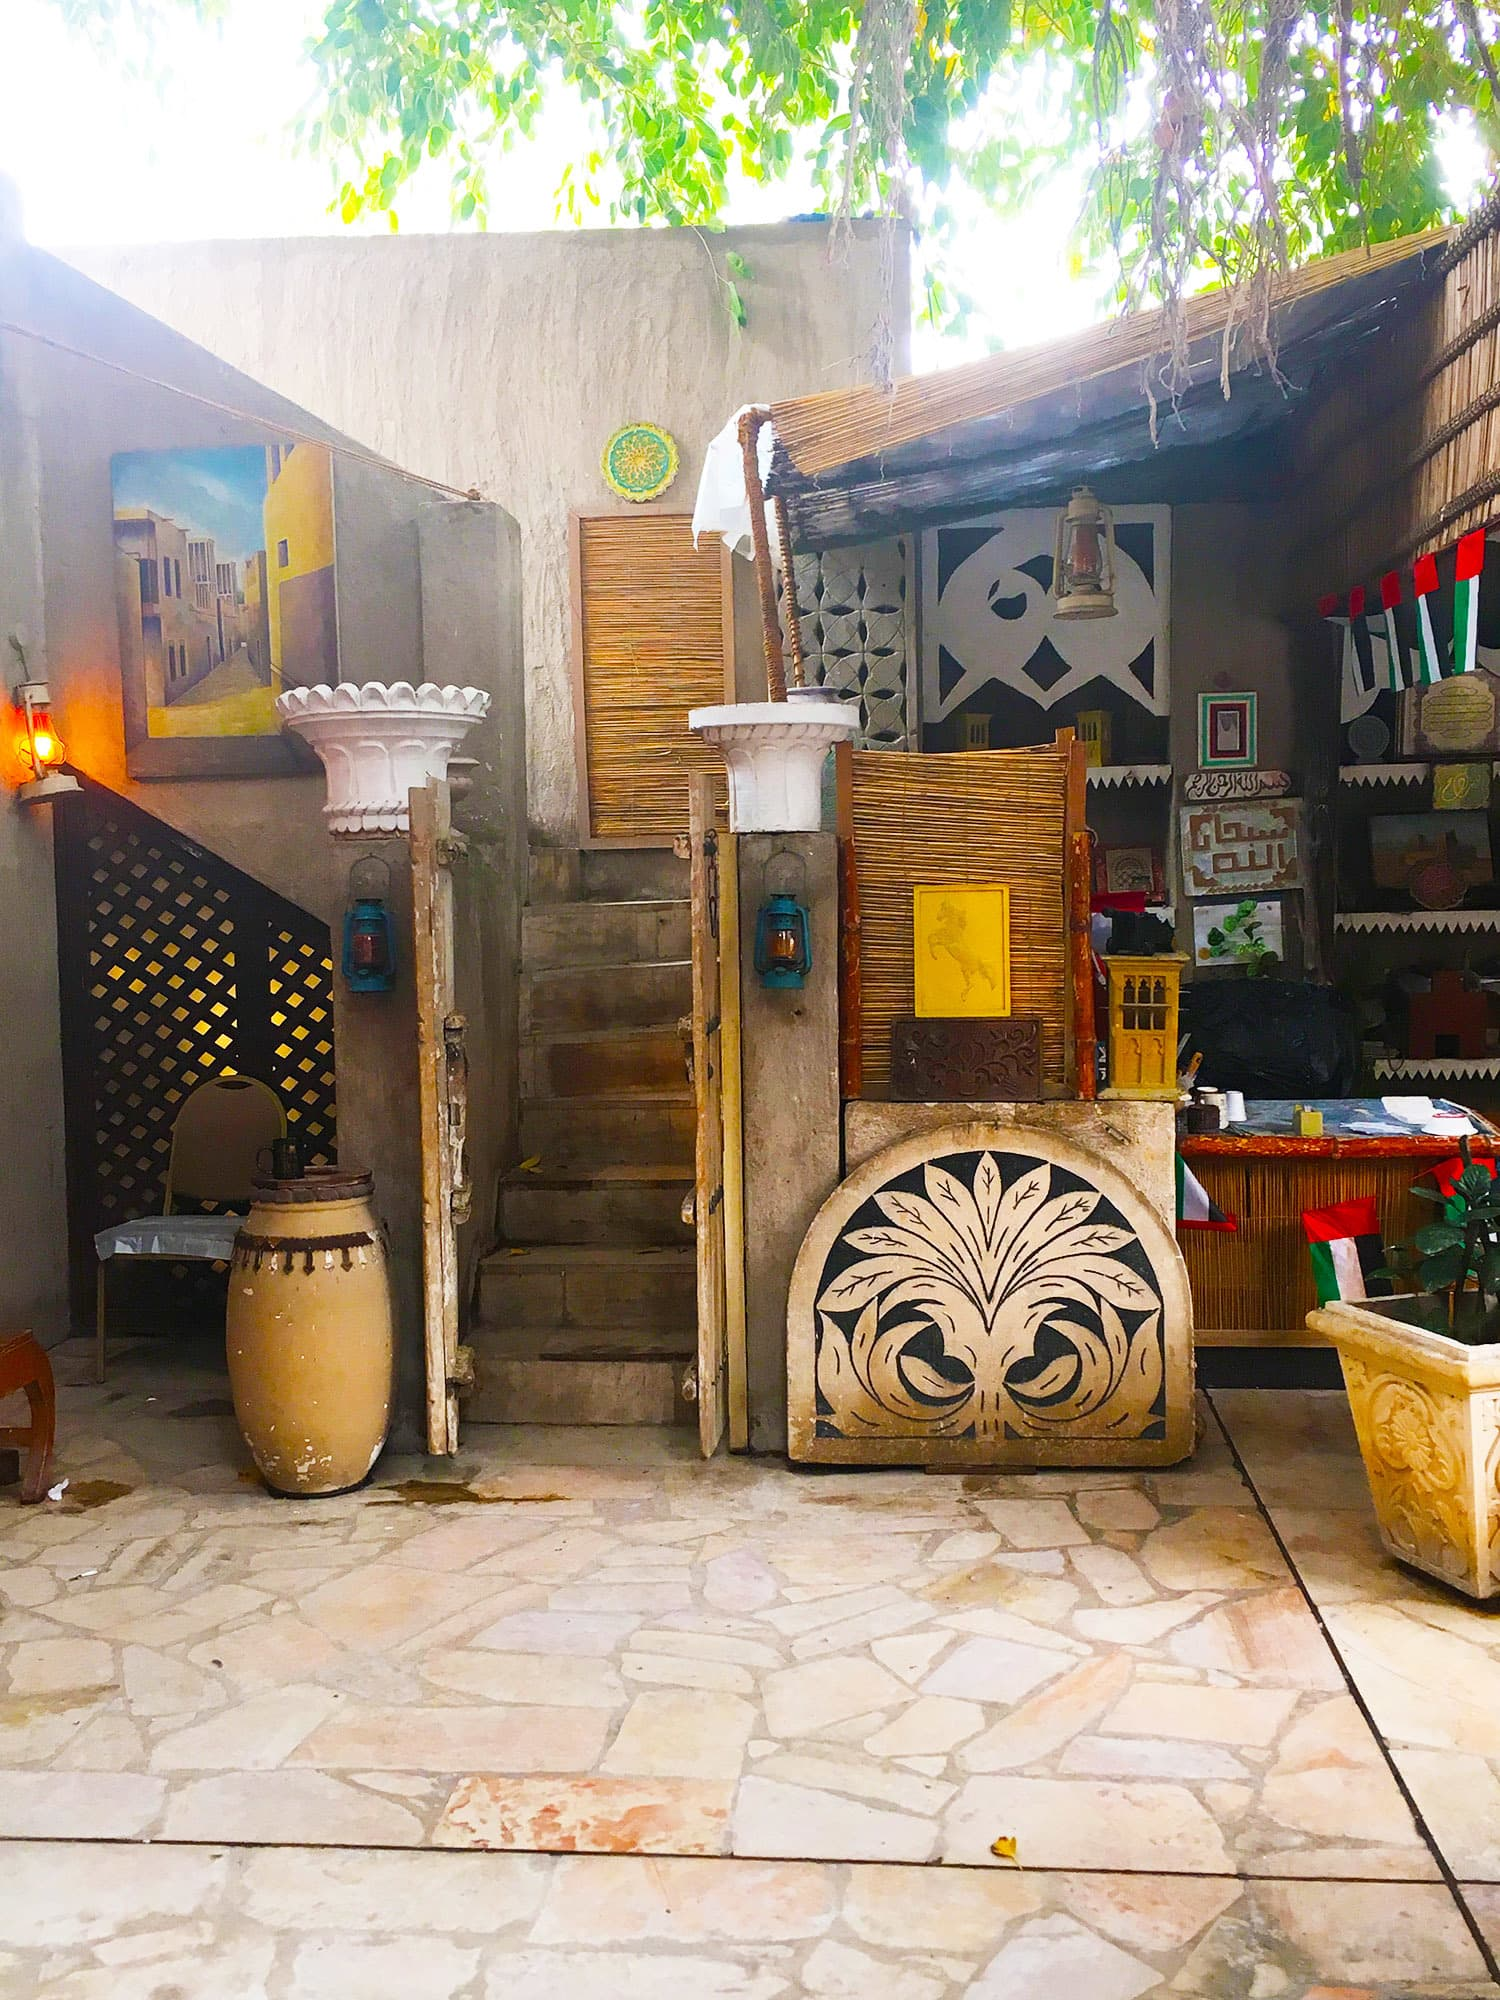 The Restoration House in Al Fahidi showcases historical artefacts.